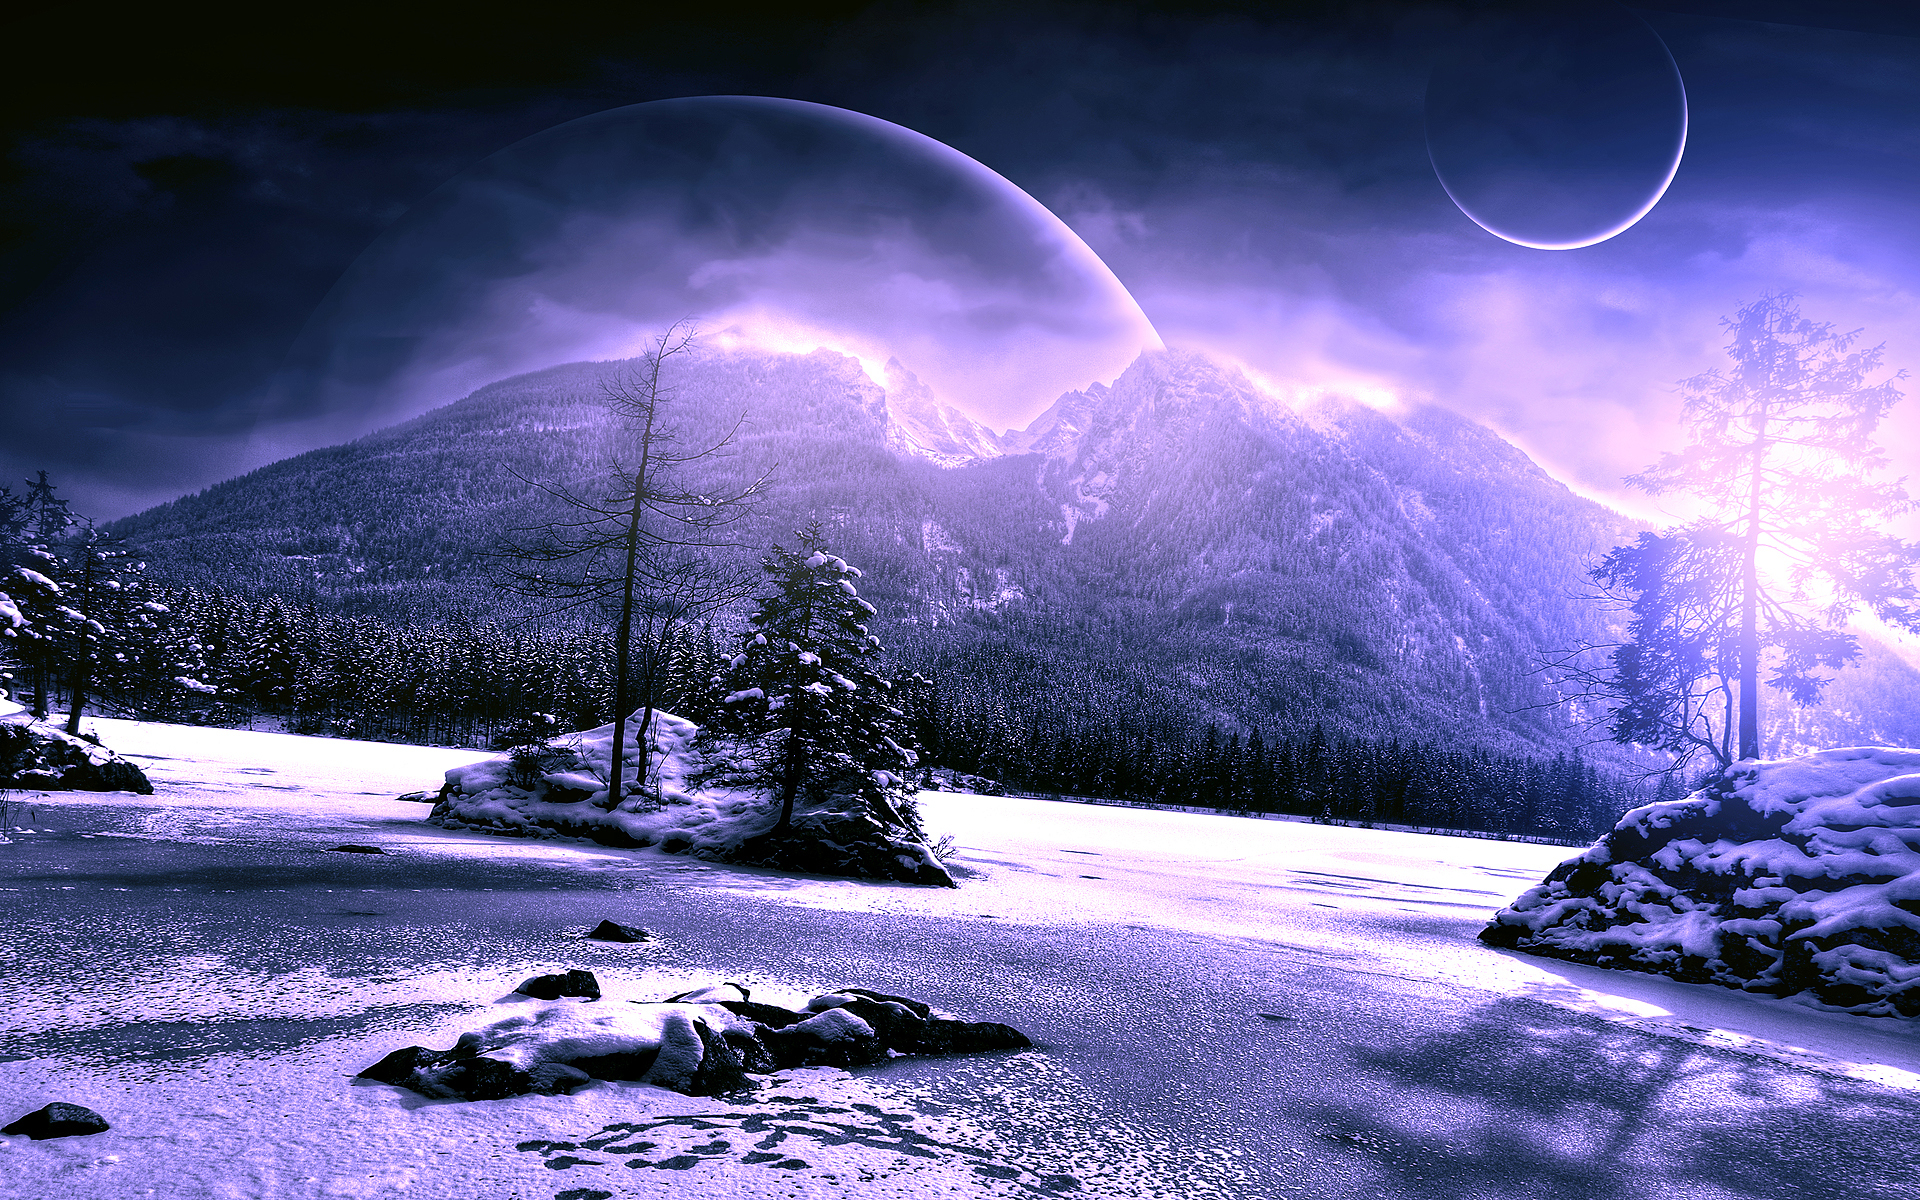 Scenery Winter Planet Mountains Snow Nature Fantasy Mood